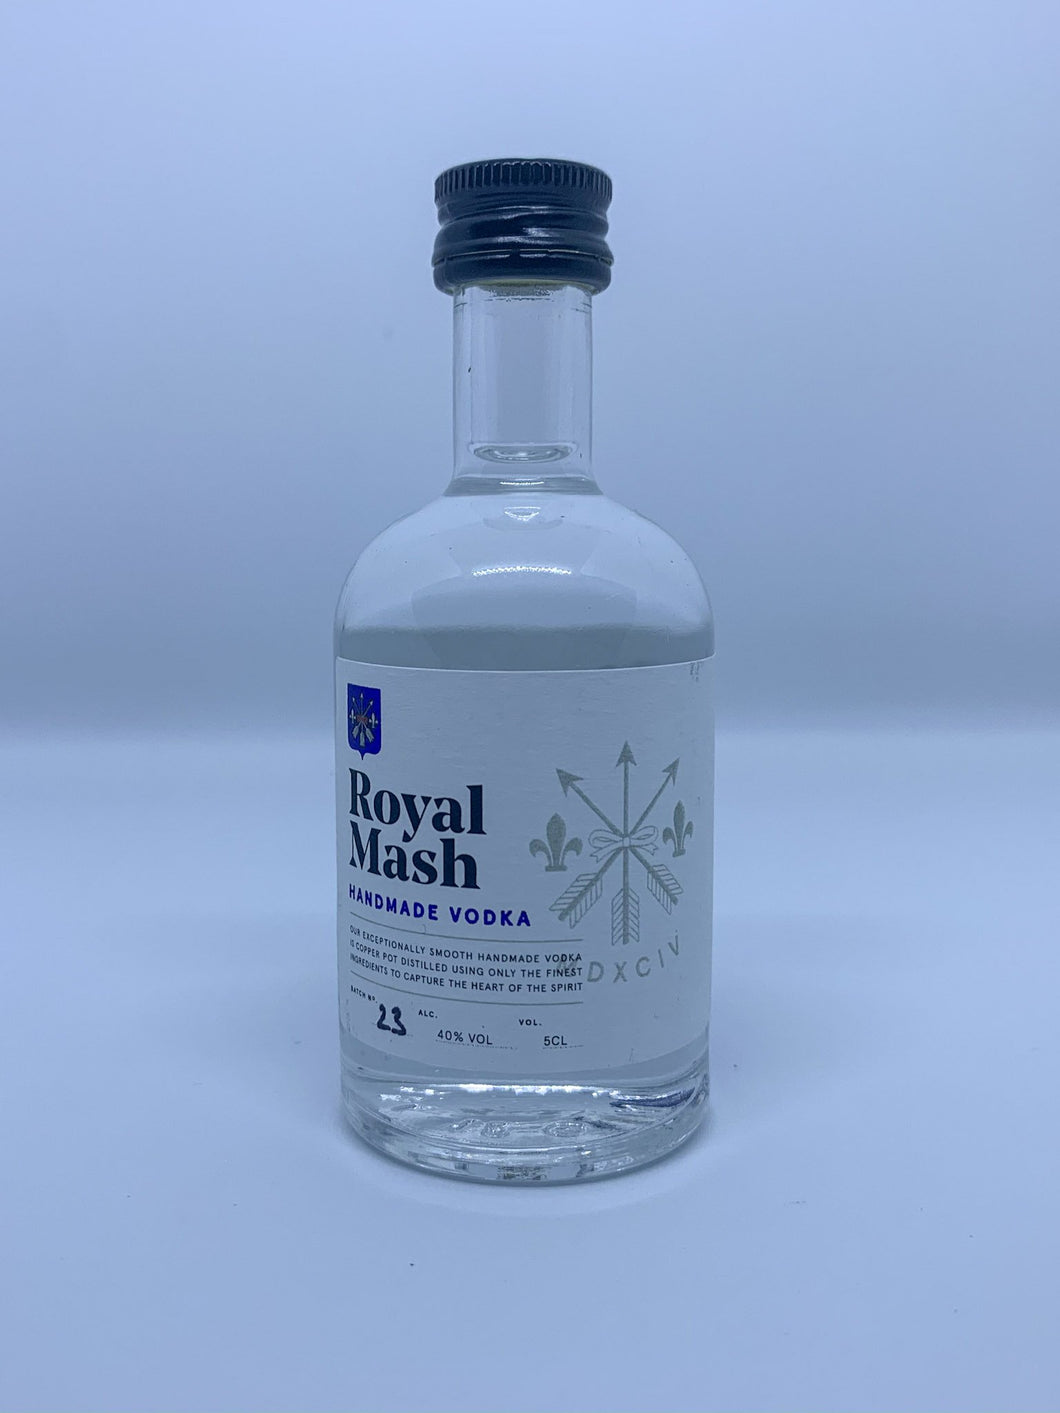 Royal Mash - 5CL